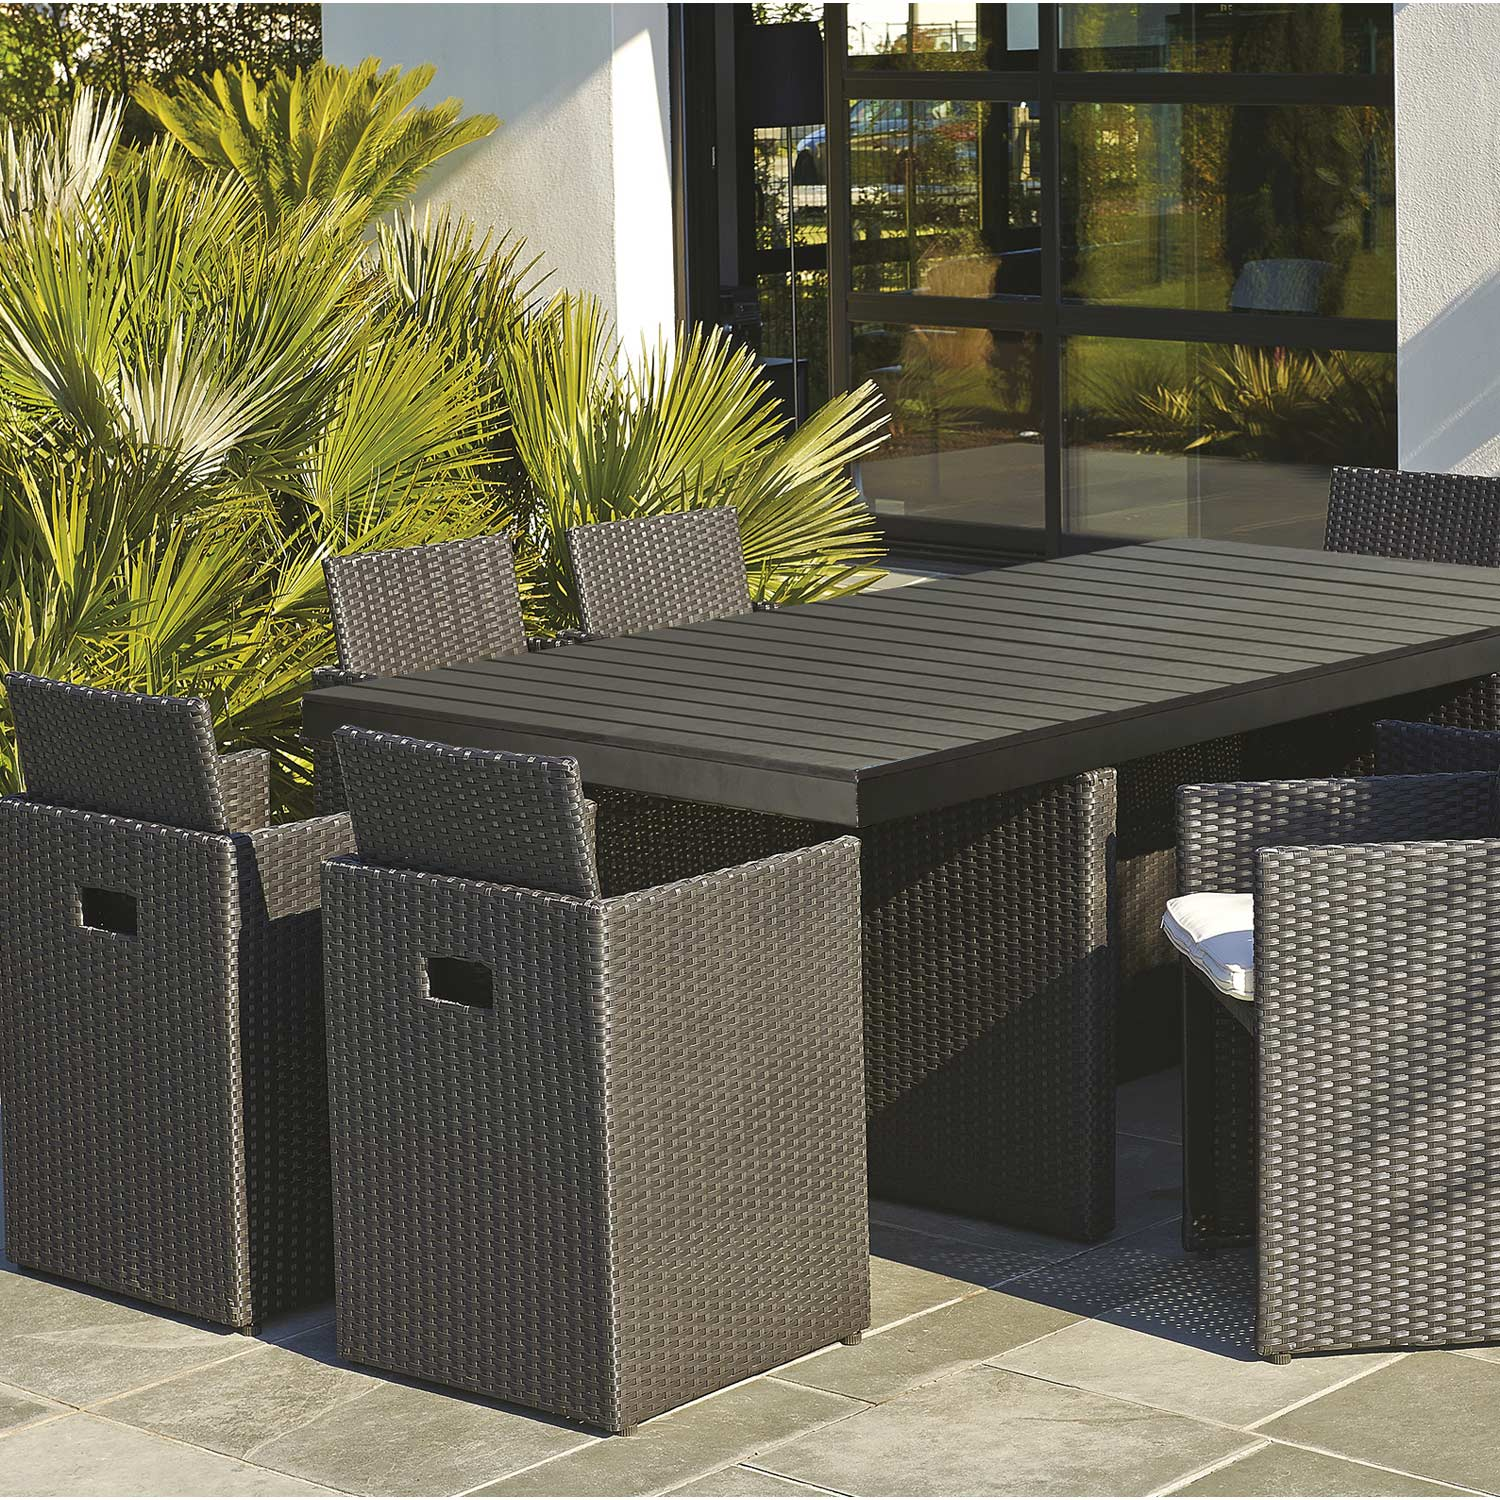 Salon de jardin encastrable r sine tress e noir 1 table - Housse salon de jardin leroy merlin ...